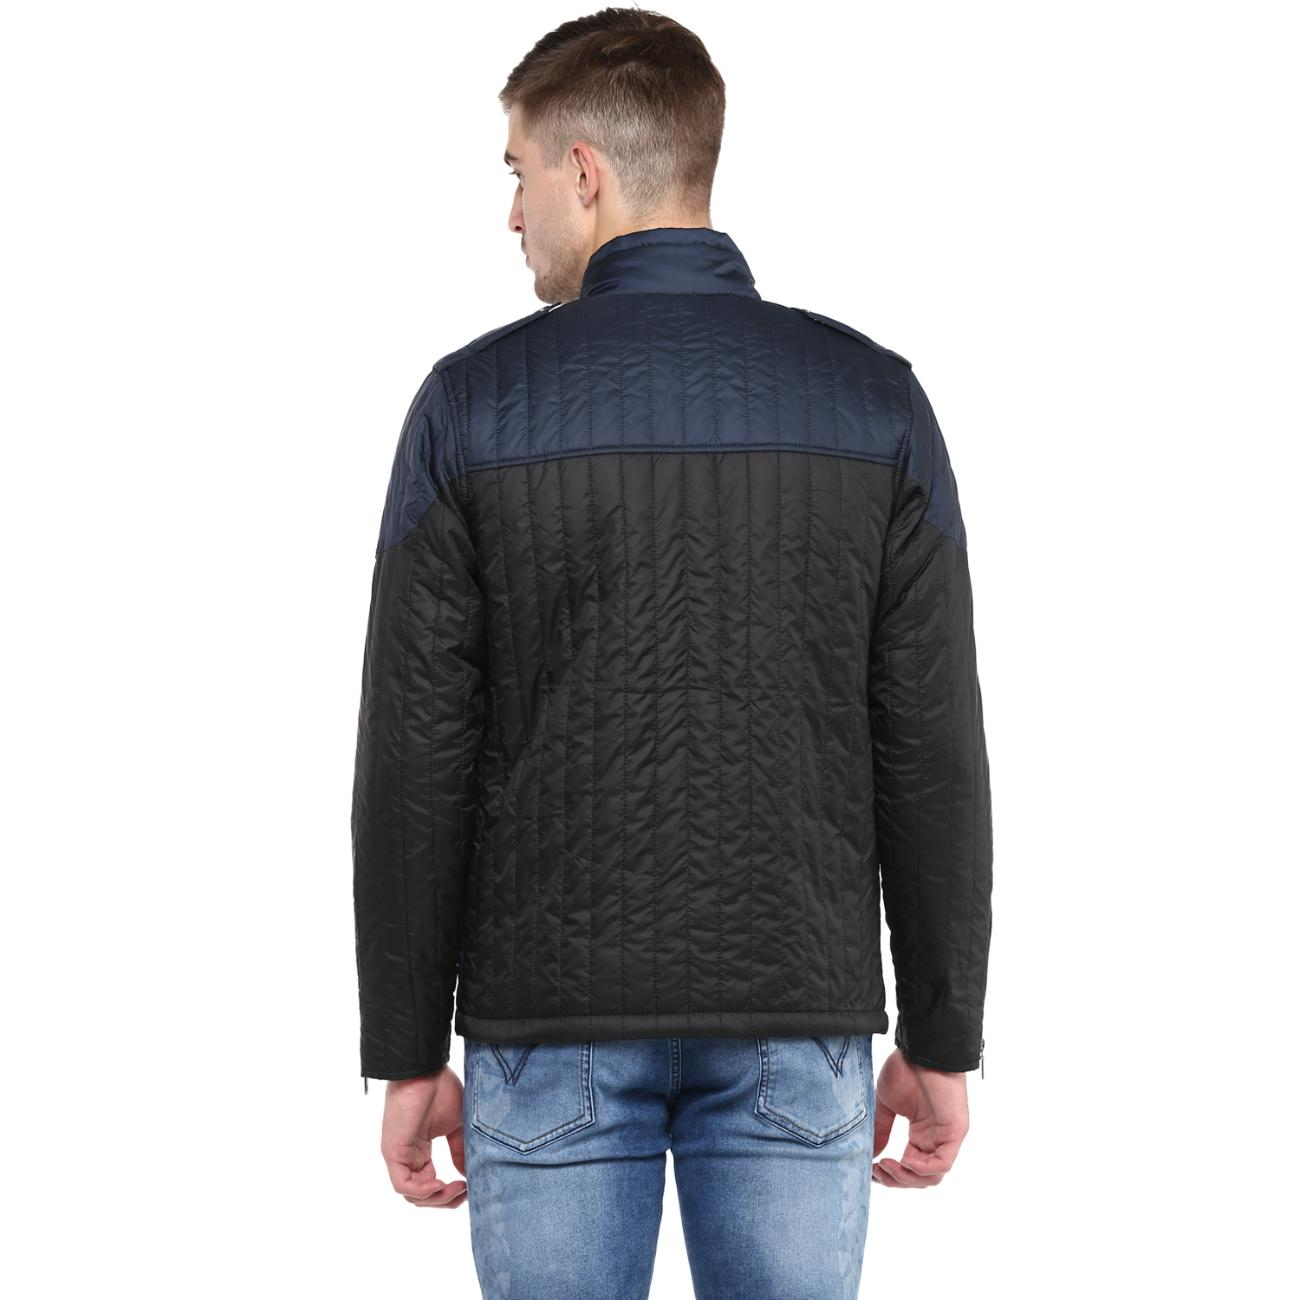 Black Navy Jacket for Men at Red Chief